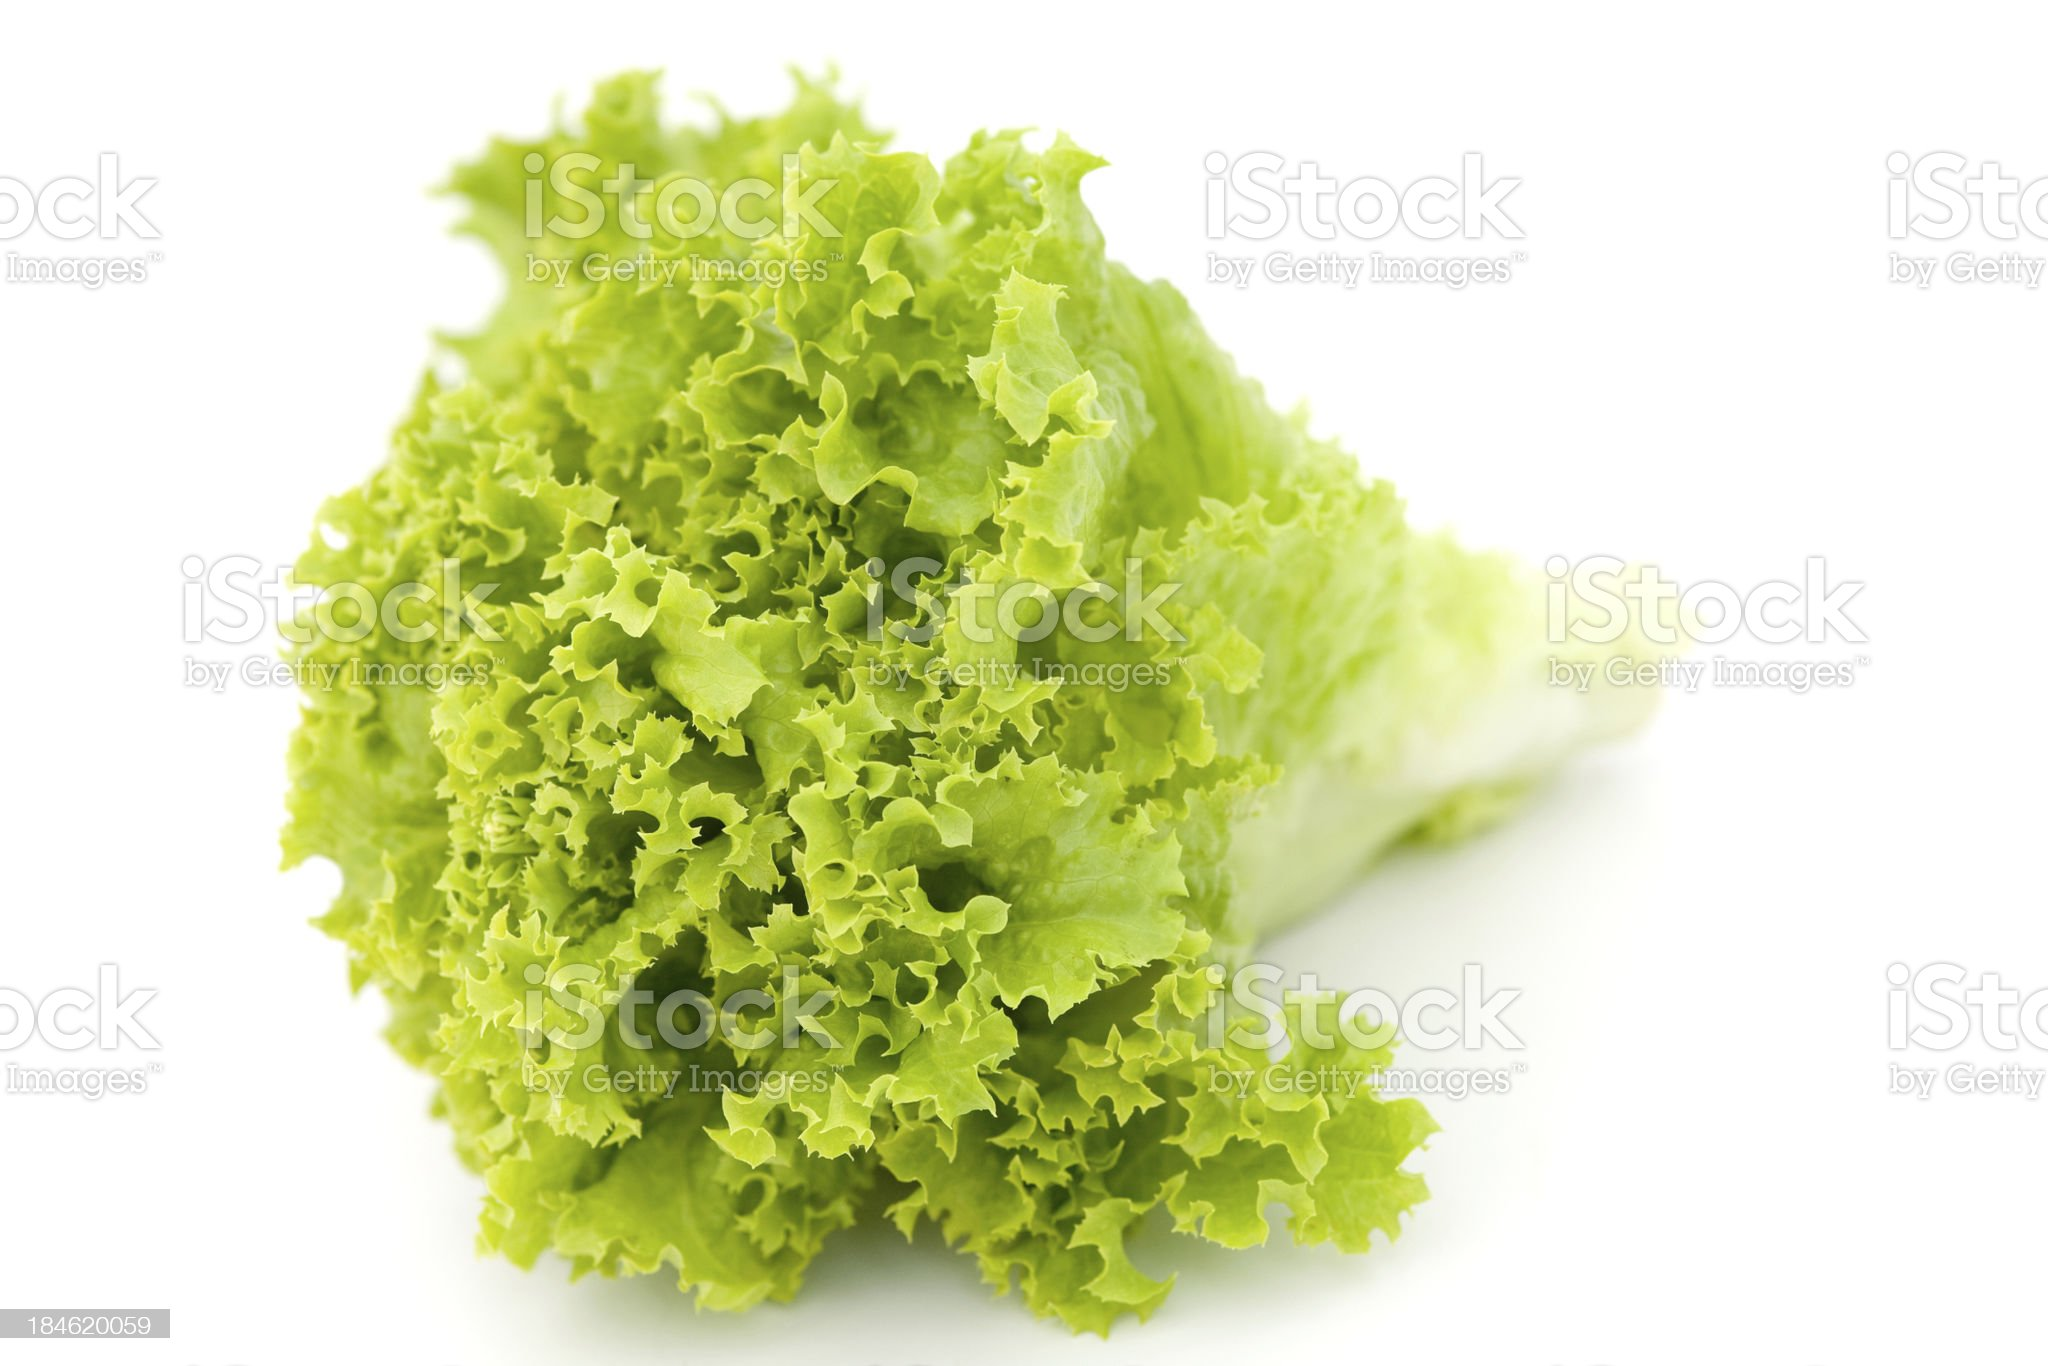 Leaf lettuce royalty-free stock photo